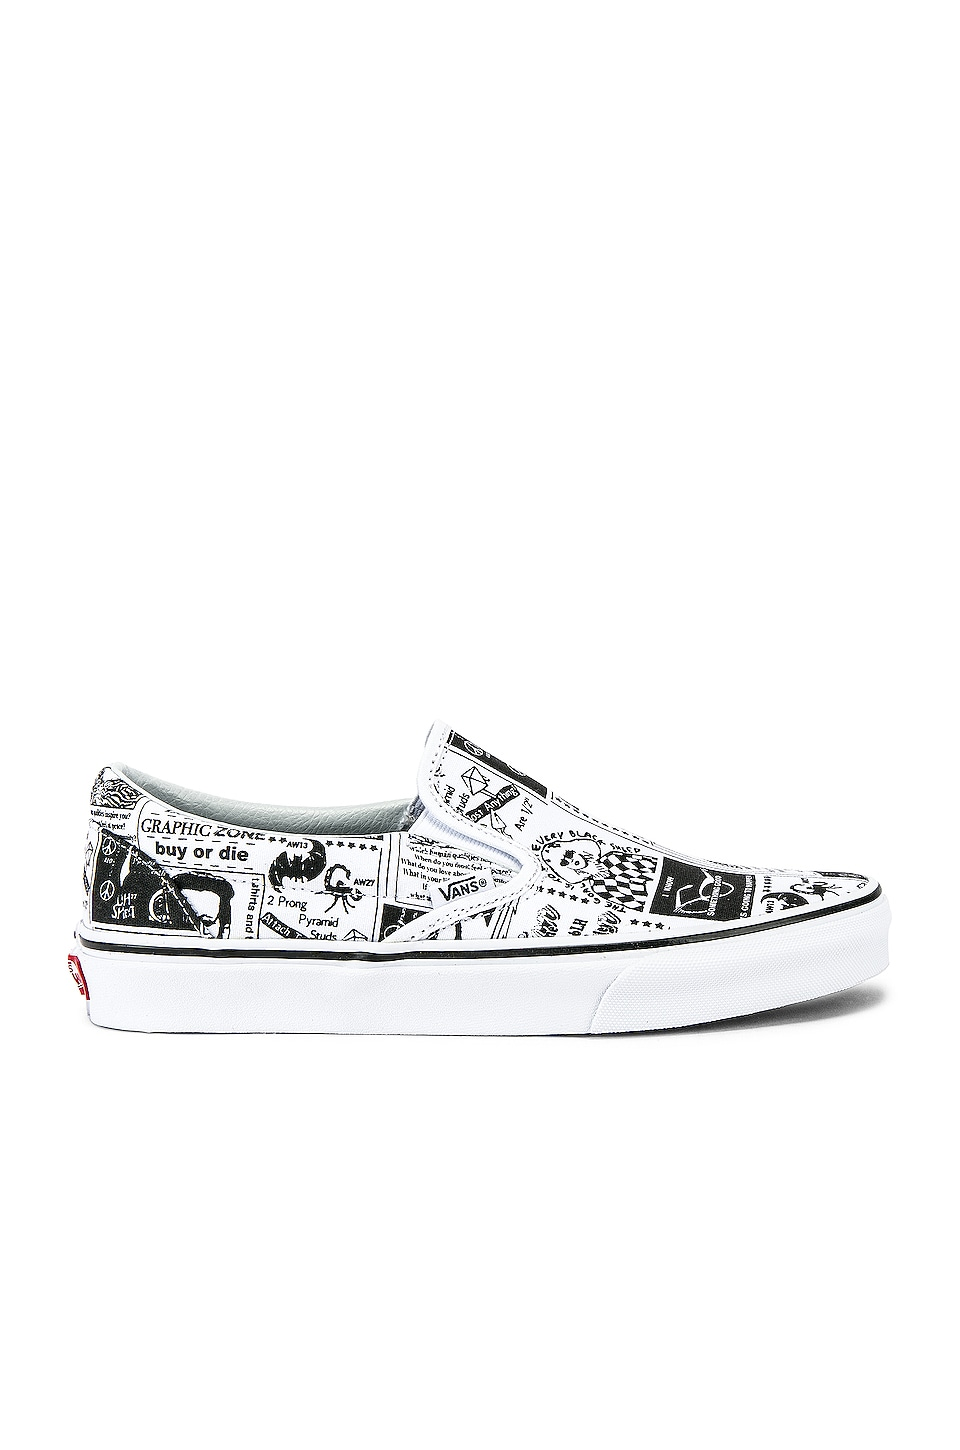 Vans x Ashley Williams Classic Slip-On in Newspaper & True White